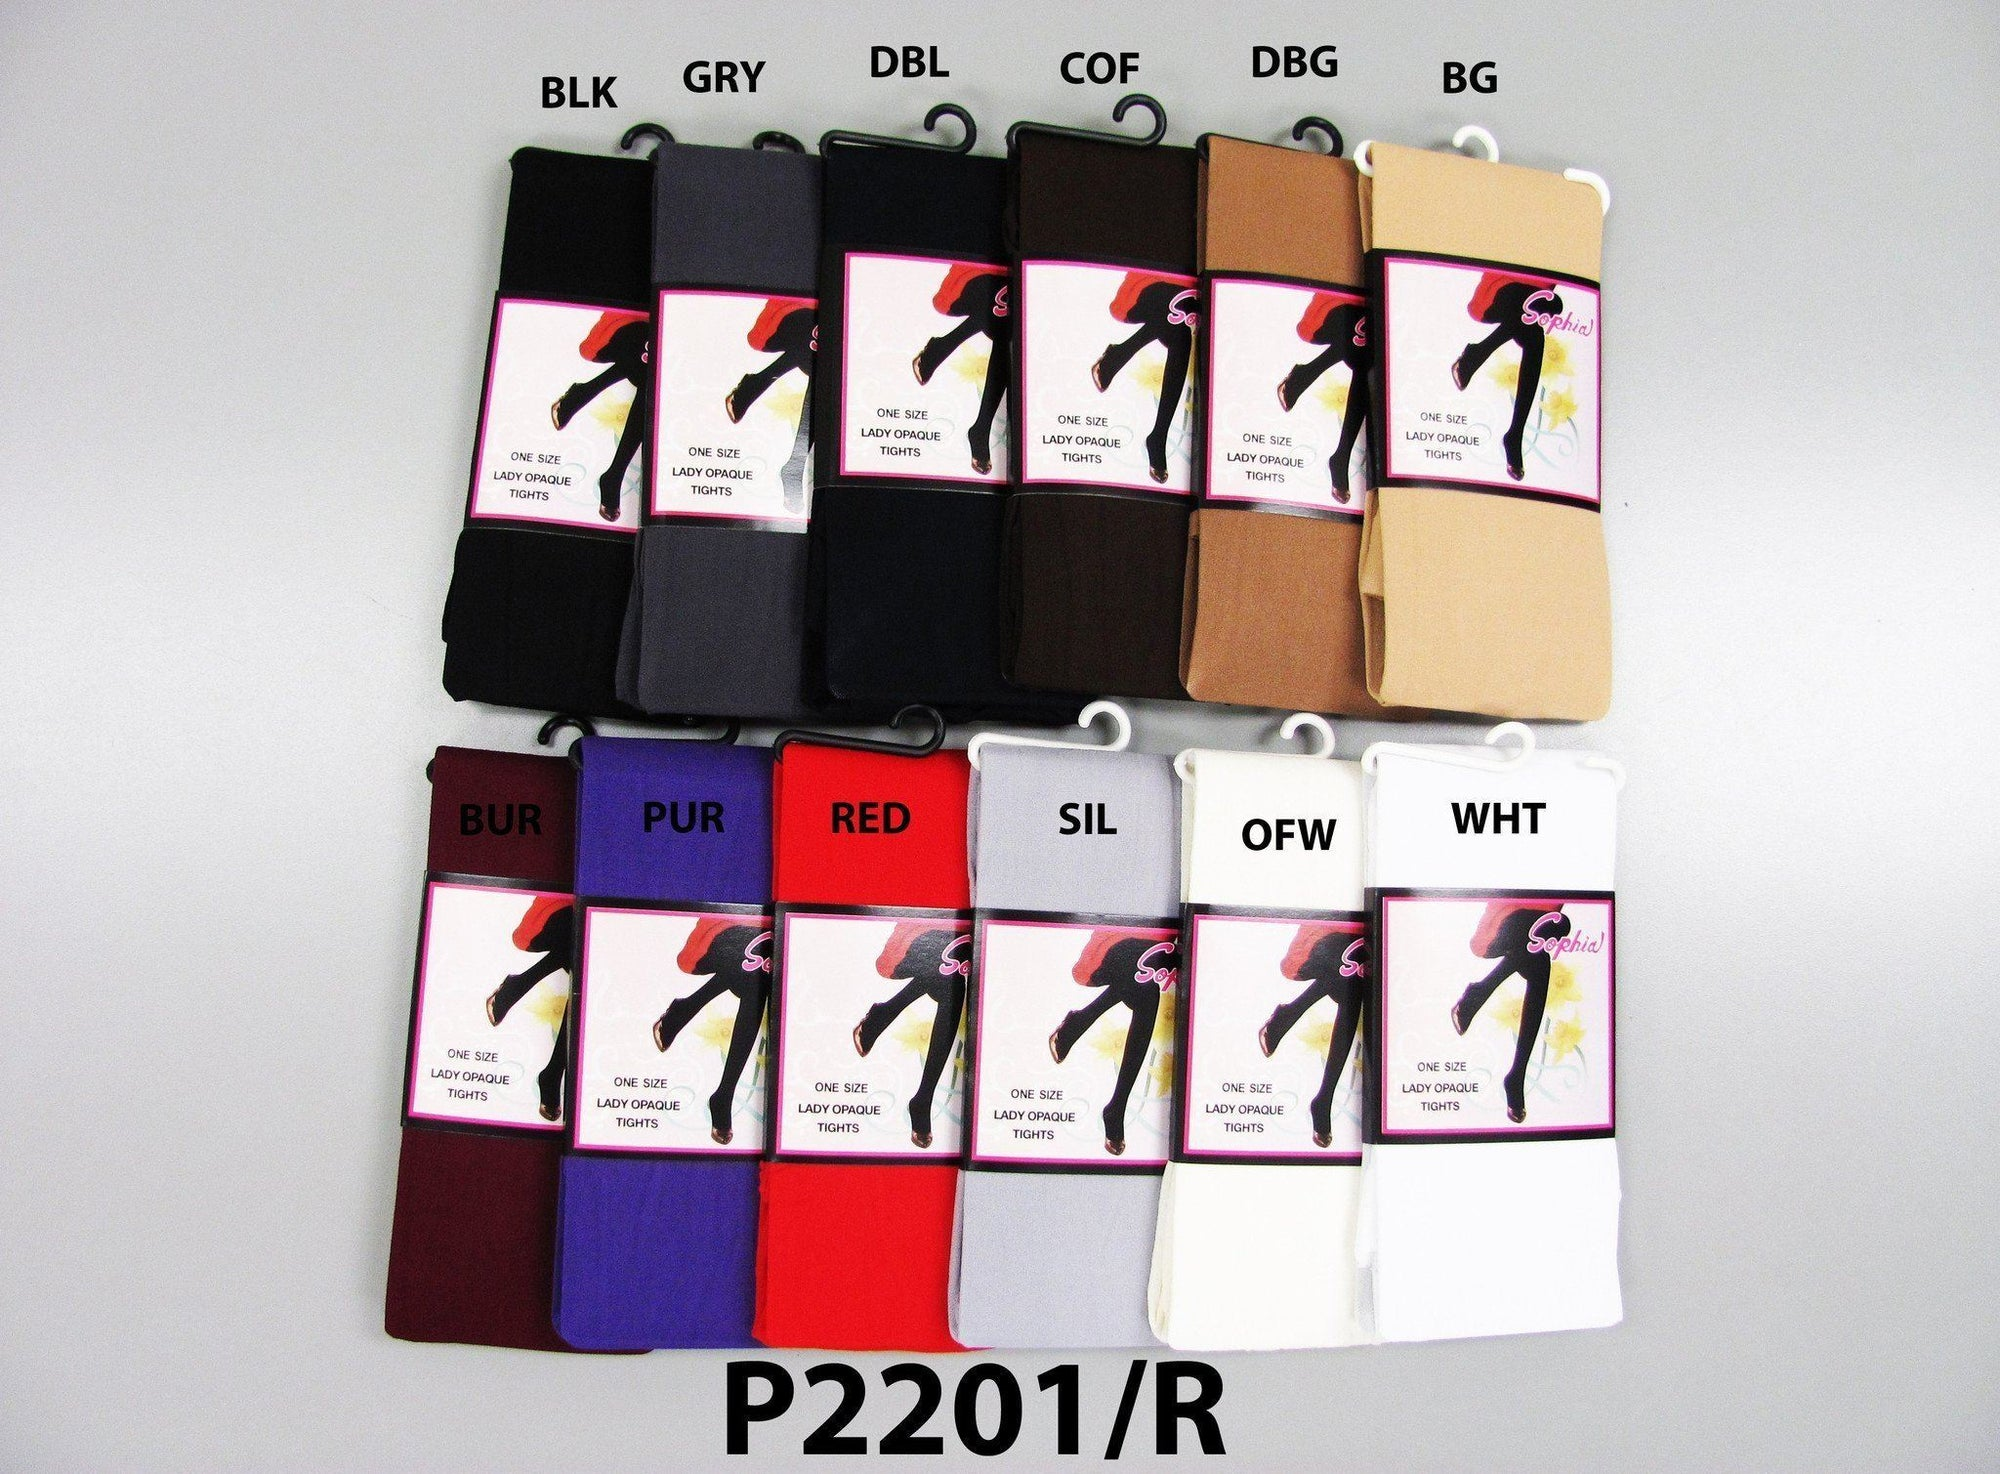 #P2201 Sophia Lady Opaque Tights One Size (6Pc) - Multiple Colors